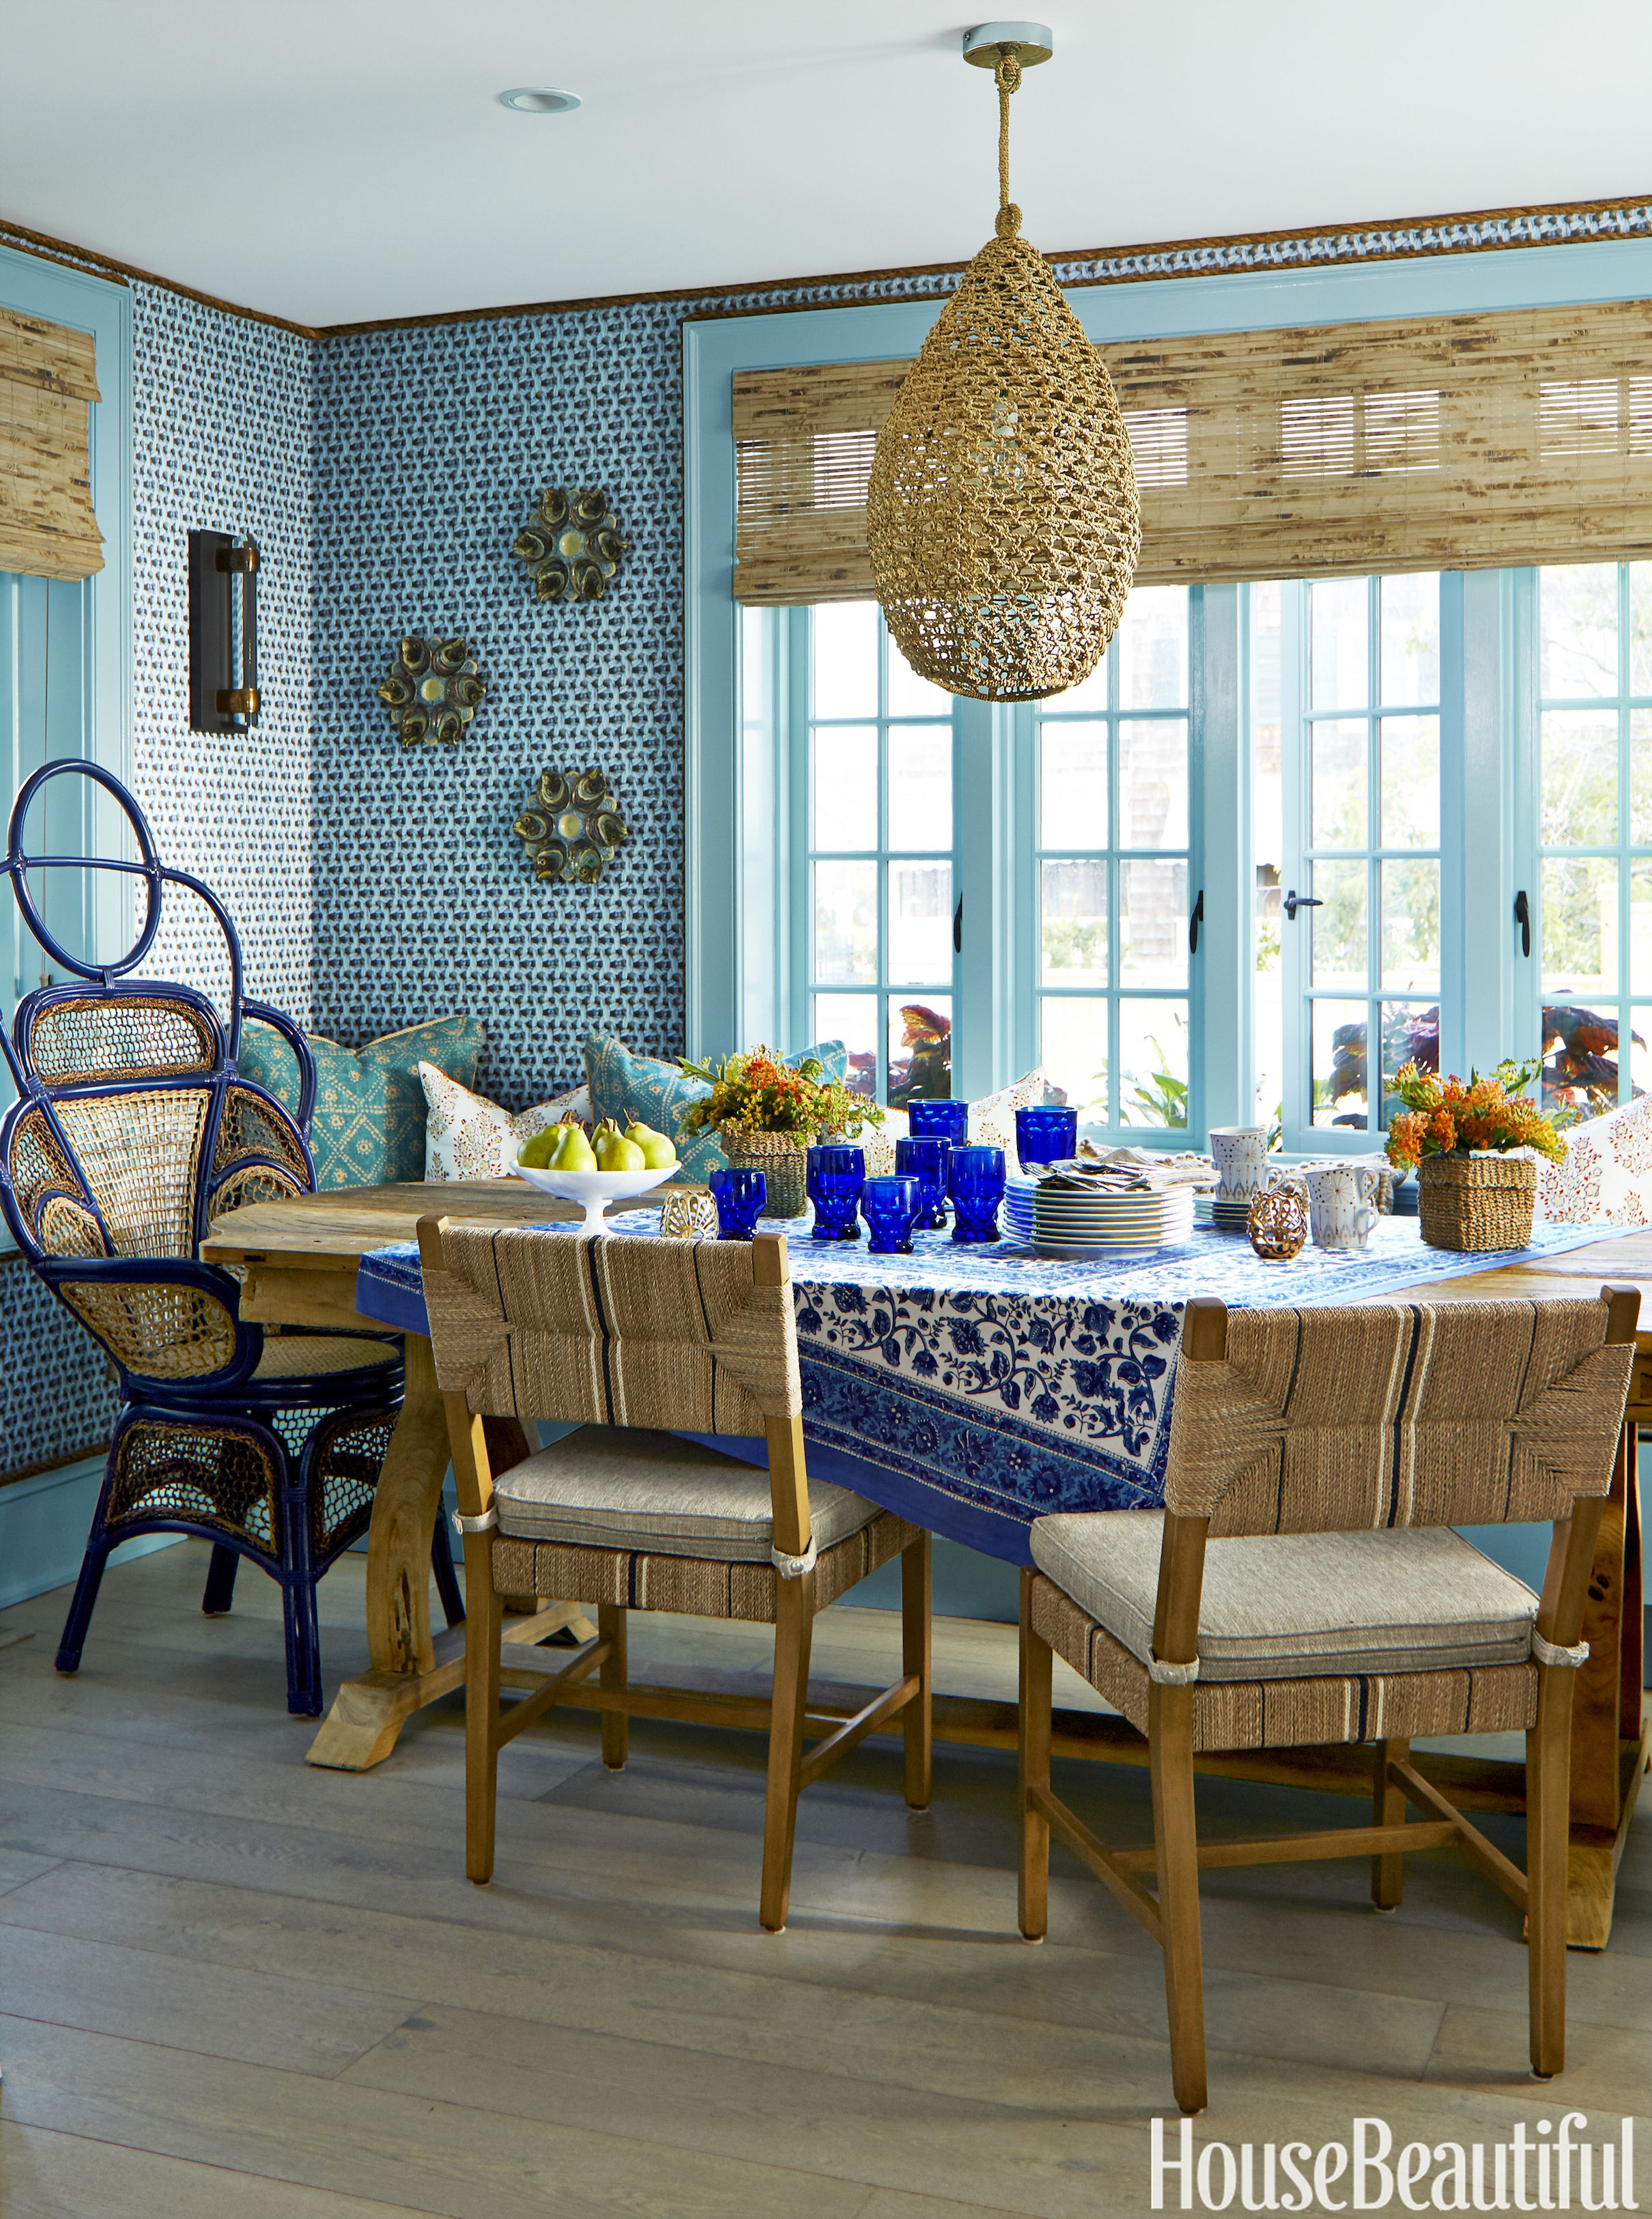 20 bohemian decor ideas boho room style decorating and inspirationcolleen bashaw beach house blue dining room